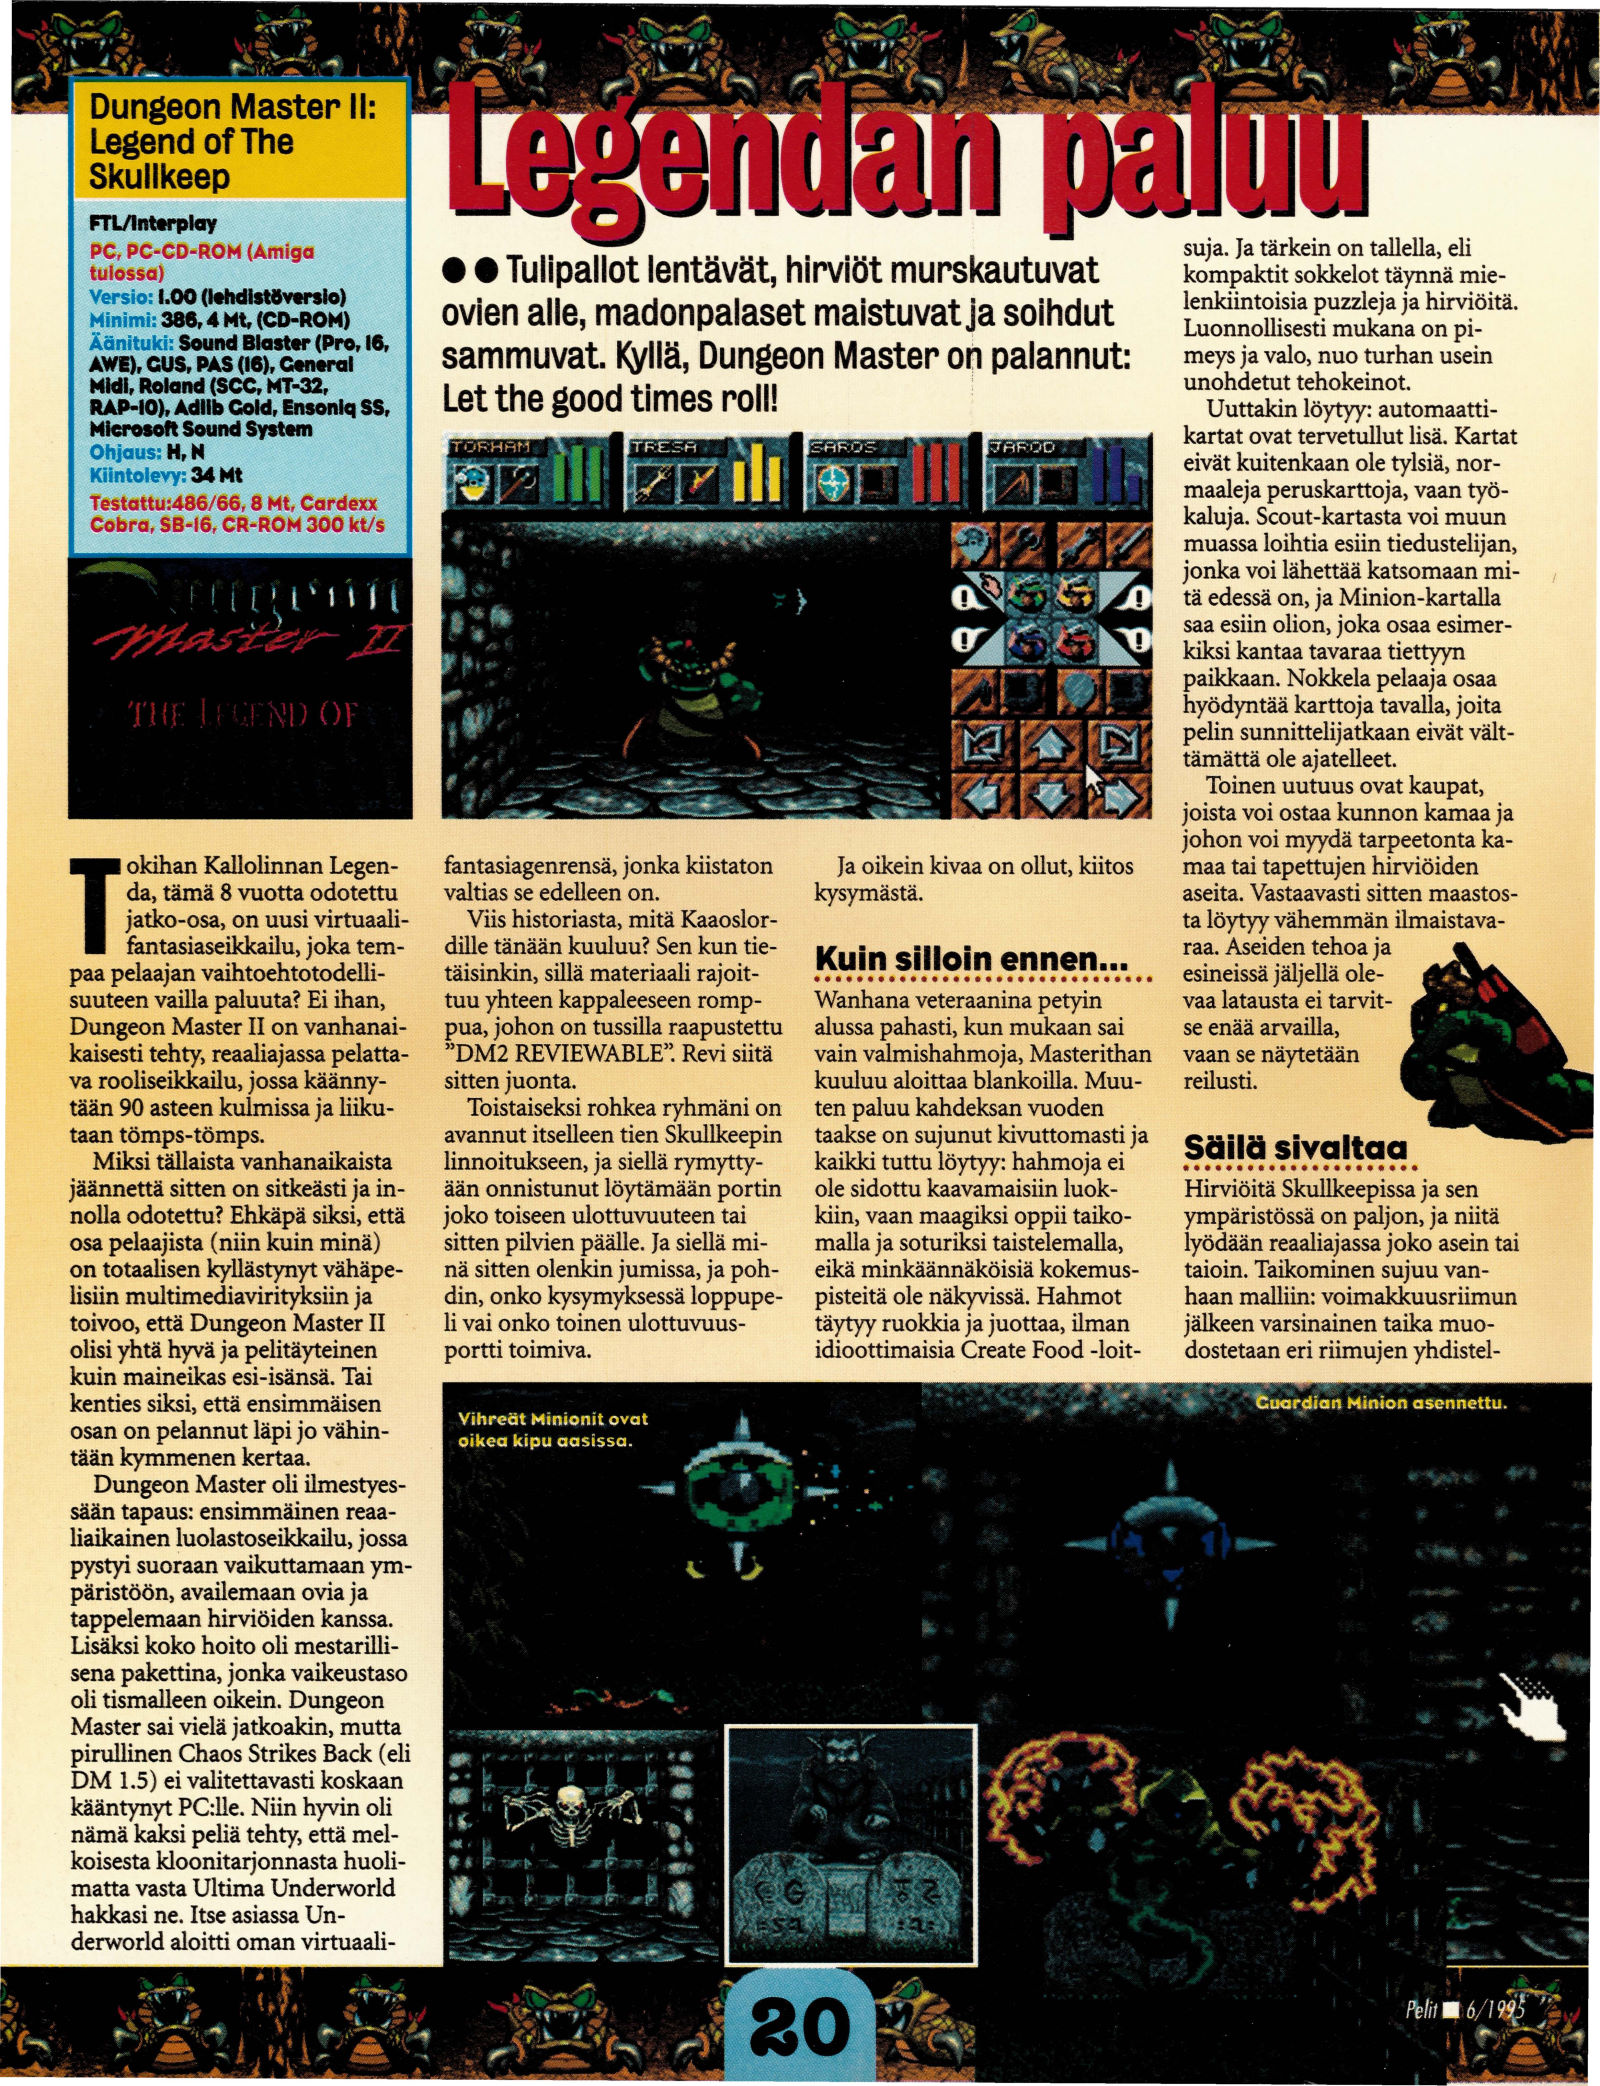 Dungeon Master II for PC Review published in Finnish magazine 'Pelit', June 1995, Page 20